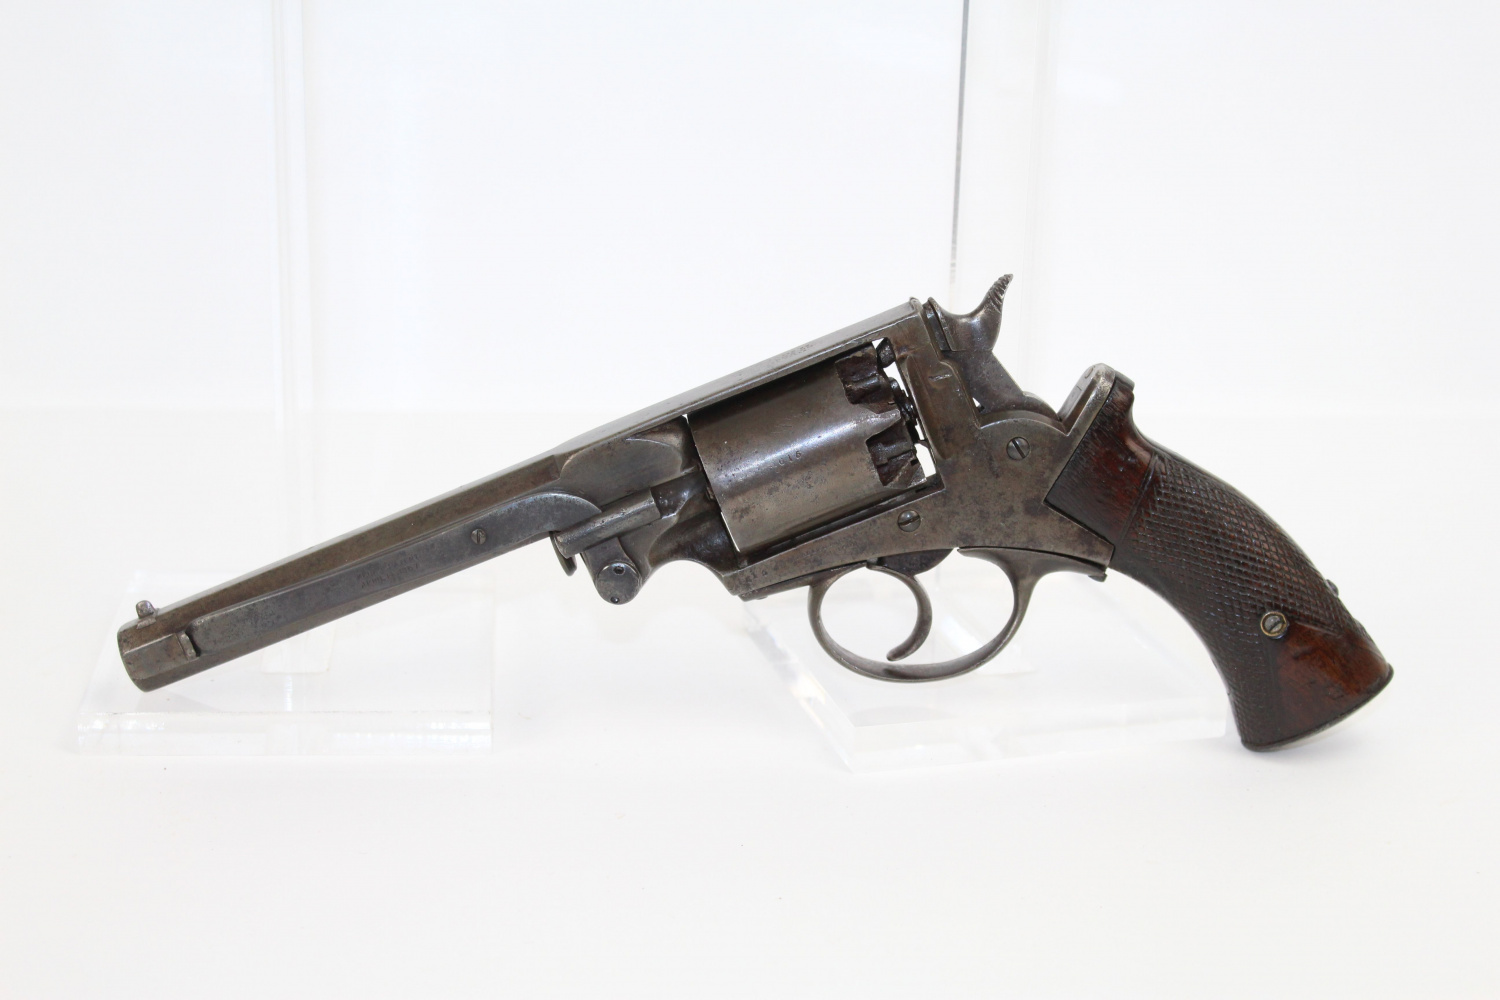 Robert Adams first to patent the double action revolver